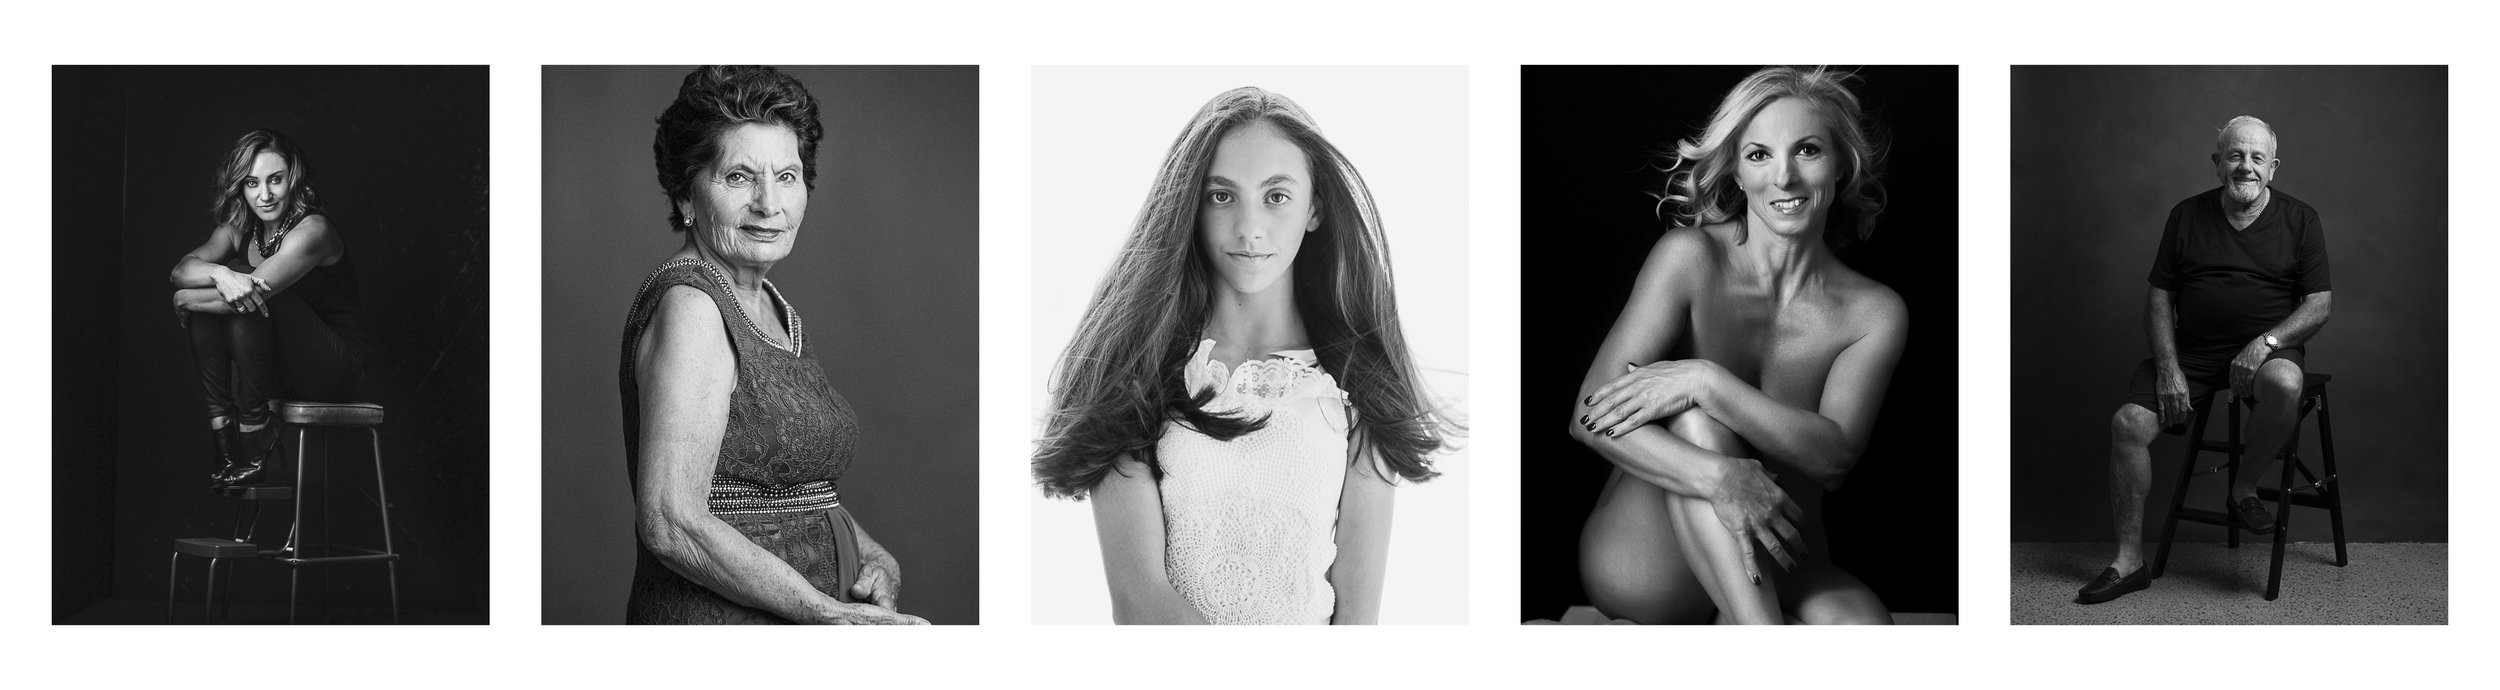 TRIPTYCH Portraits Just for You.jpg